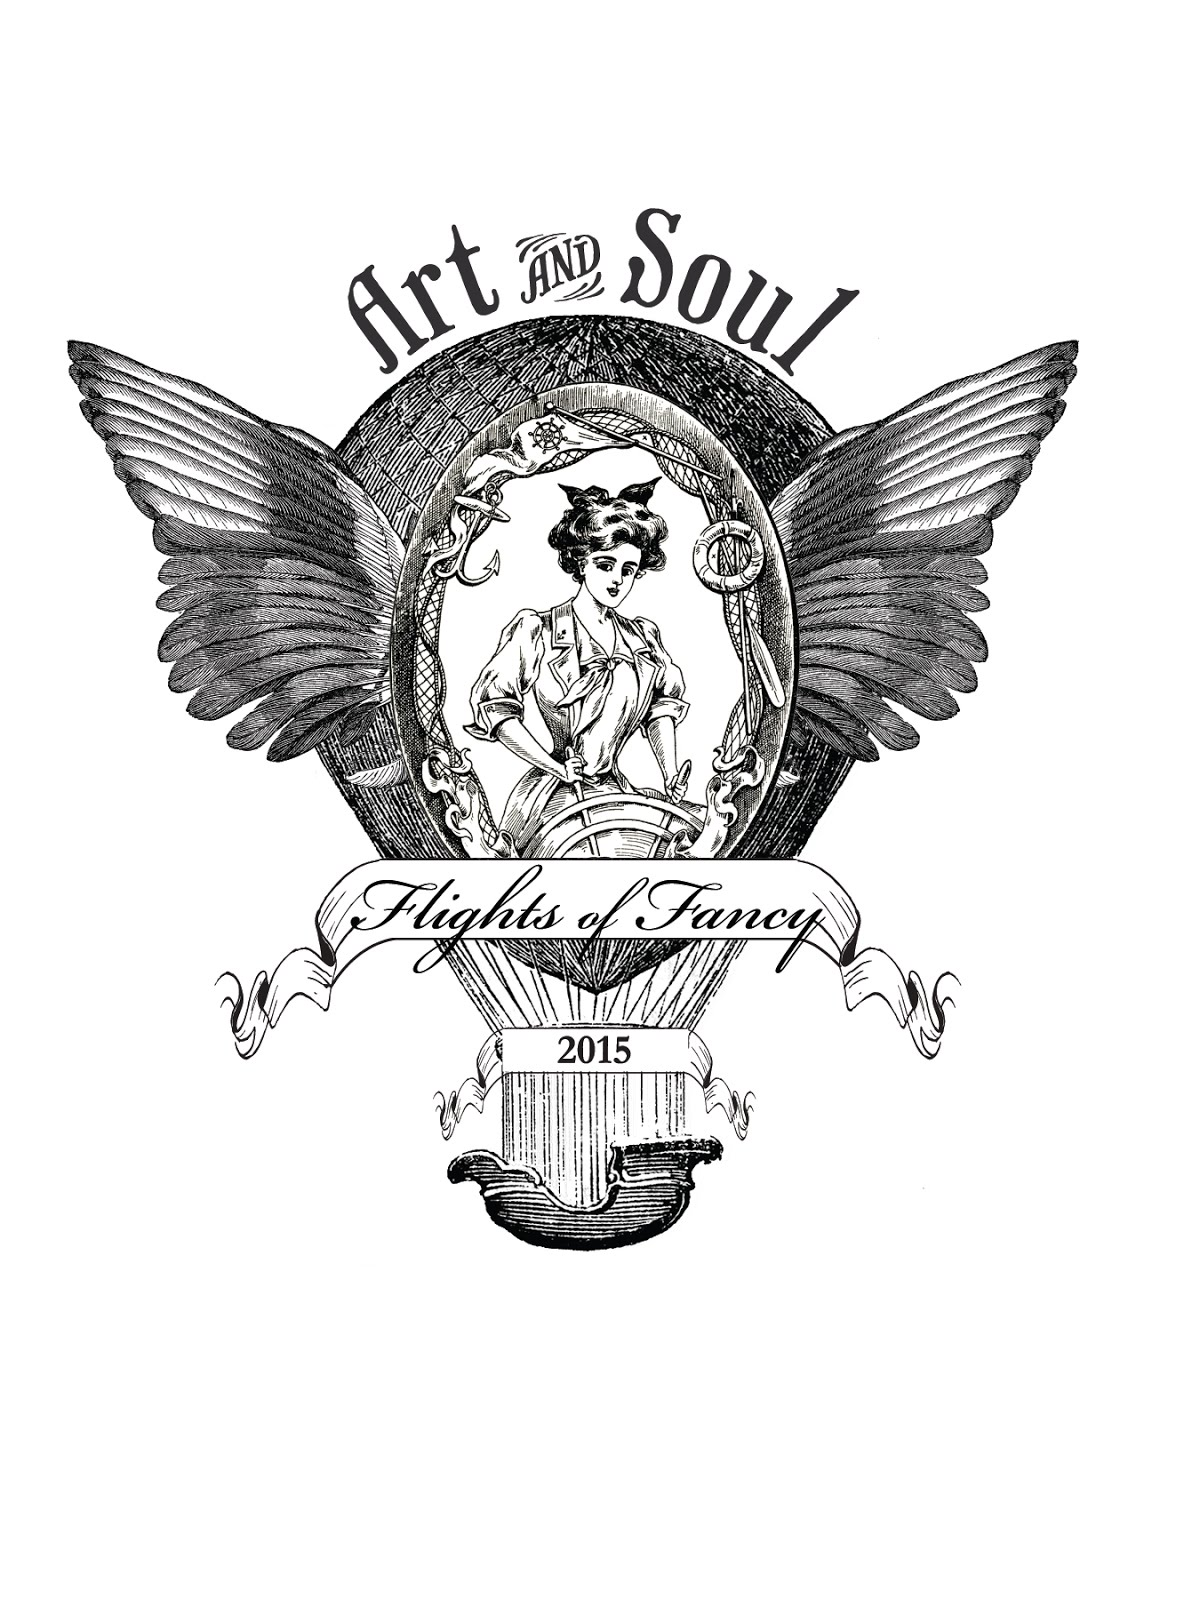 I AM TEACHING AT ART & SOUL 2015